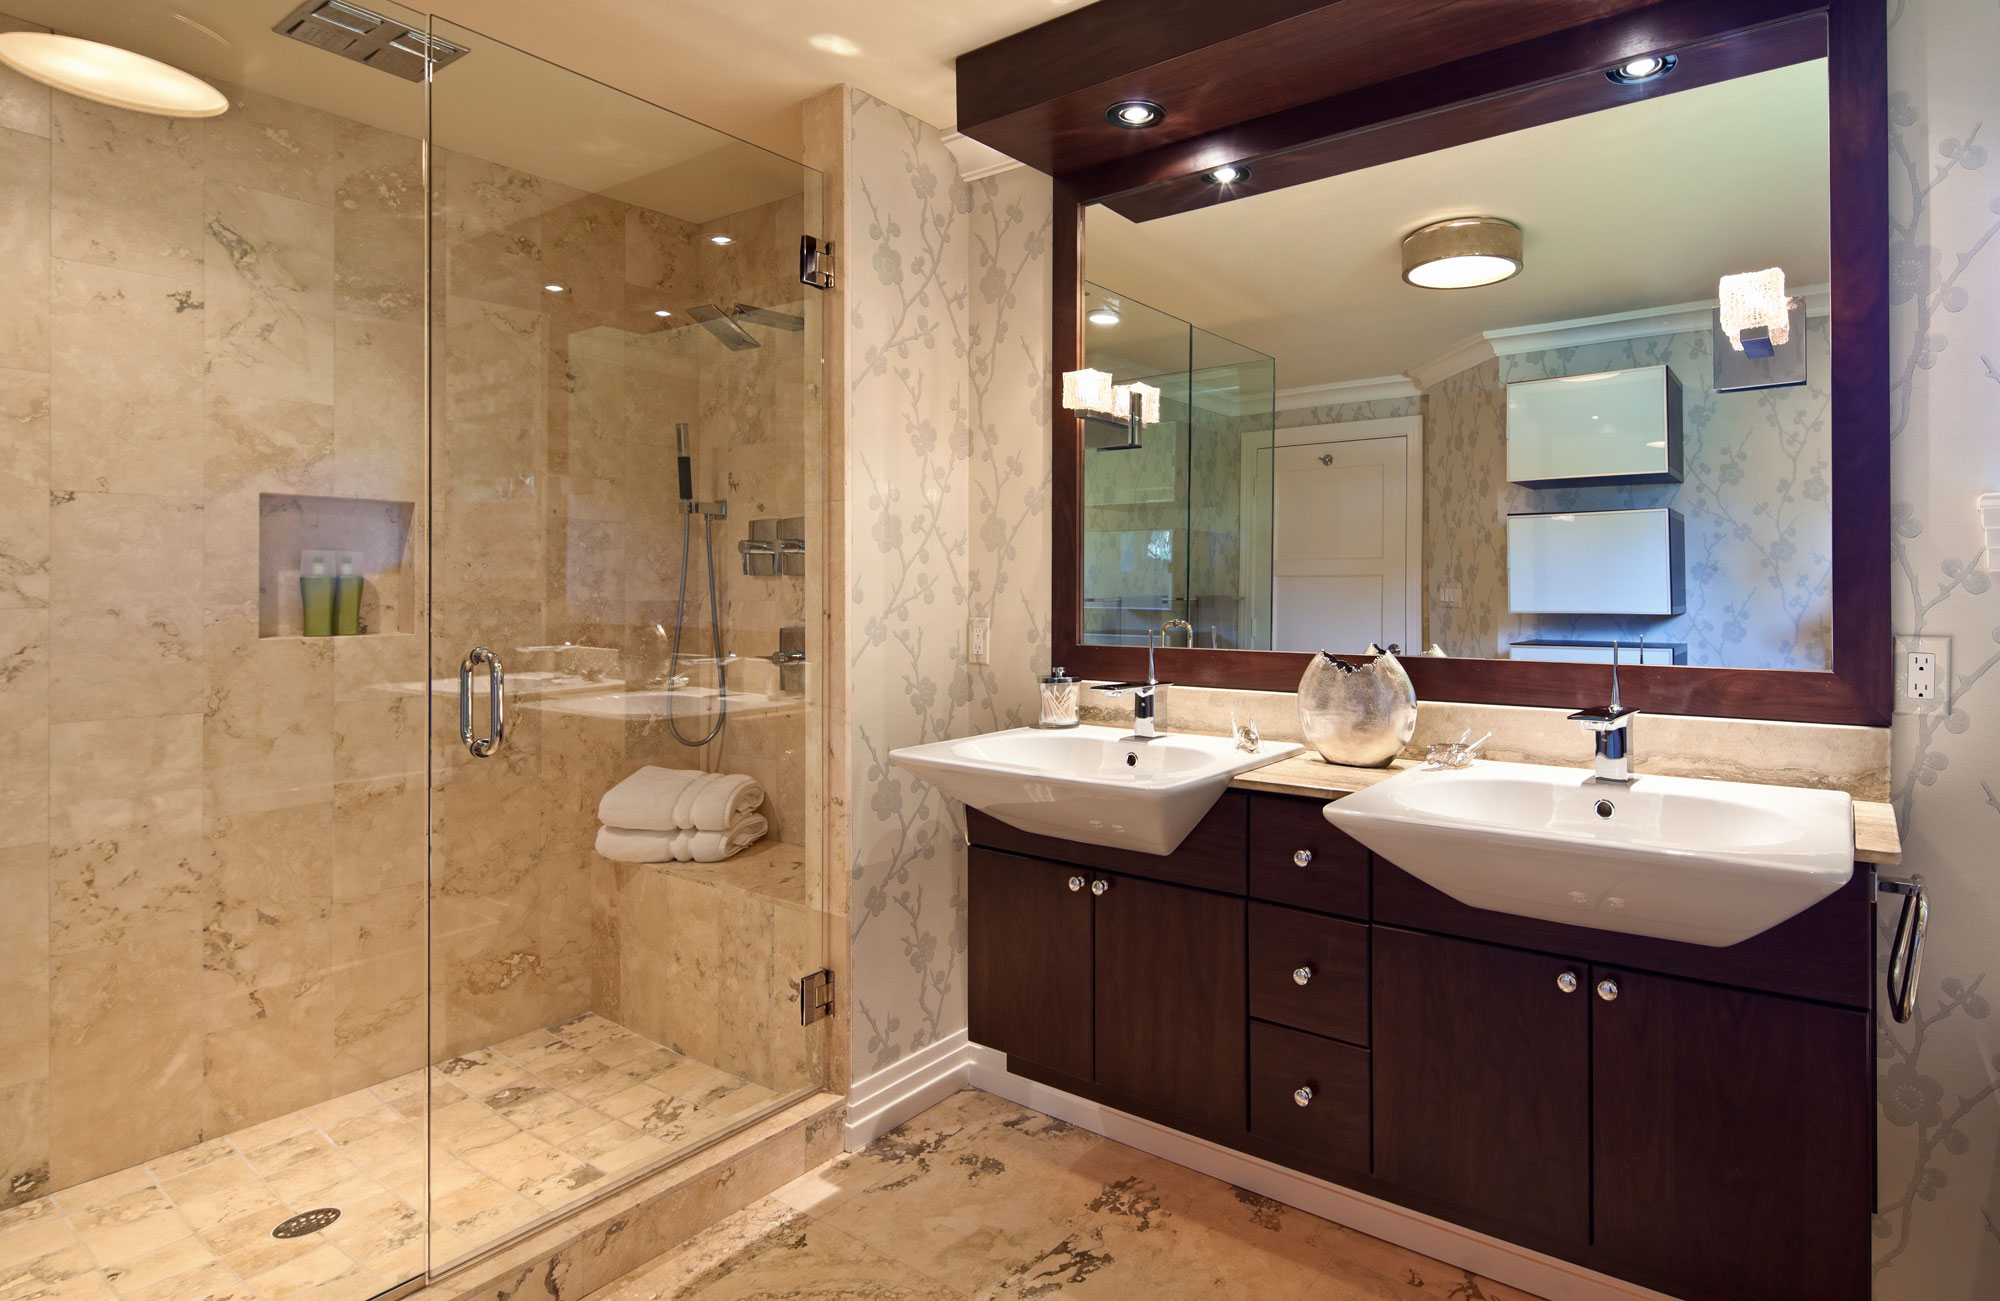 Los angeles bathroom remodeling contractor call for a free Bathroom remodeling services